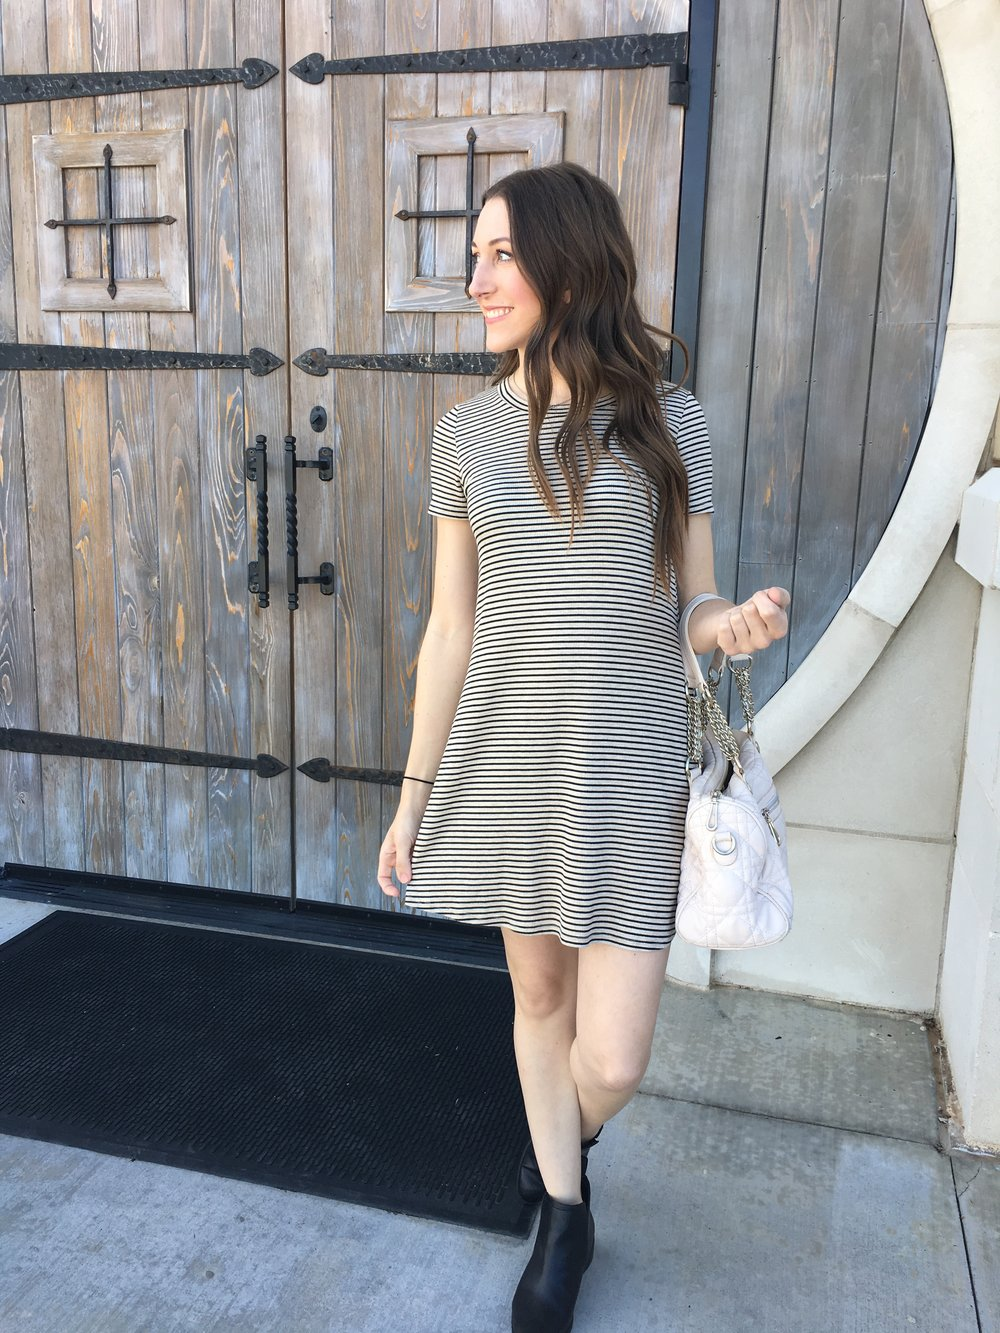 This dress is currently available in-store at Blu Spero, but I could not find it online.  The brand is Blu Pepper.  I tracked down a couple similar dresses  here  and  here .  My boots are from  Target  and my bag is from Francesca's and is no longer available.